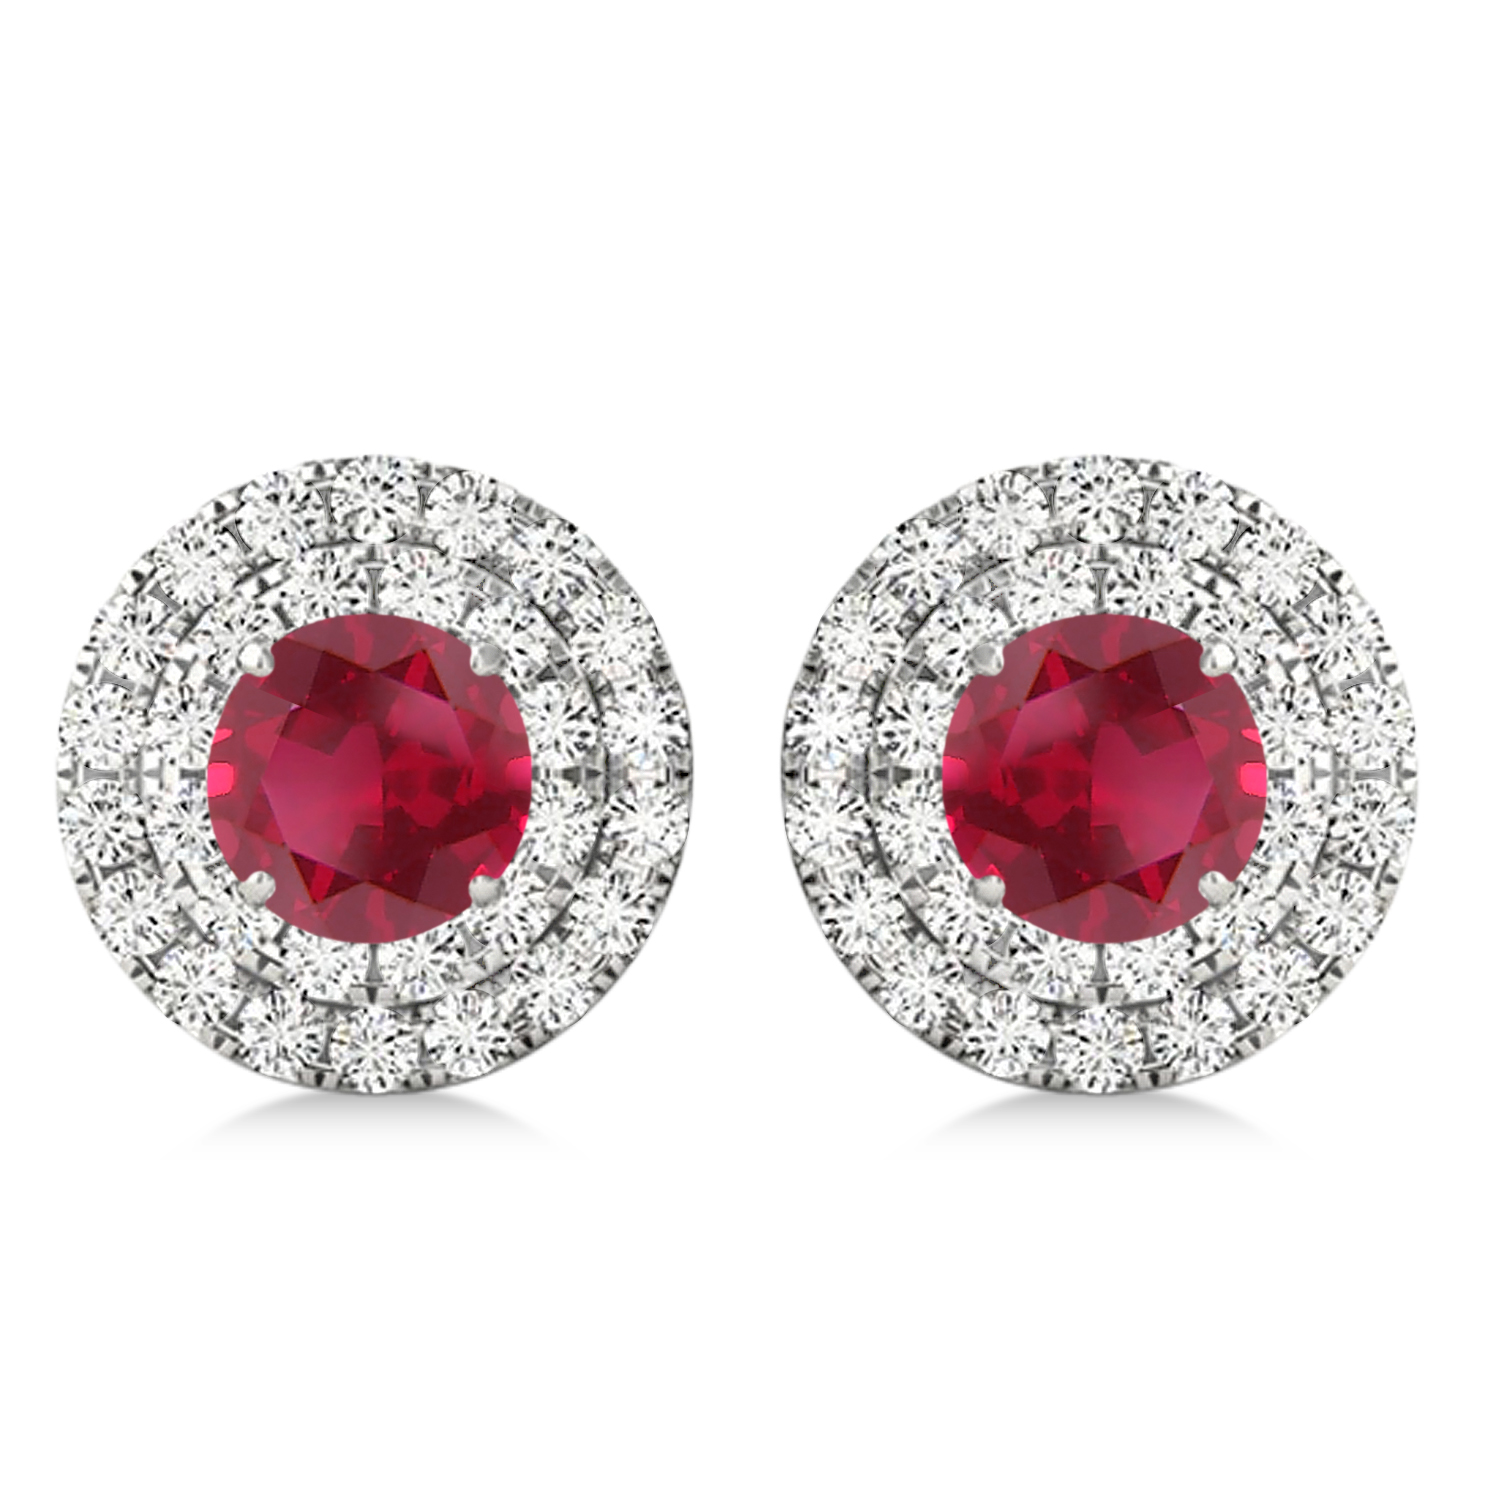 Round Double Halo Diamond & Ruby Earrings 14k White Gold 1.65ct